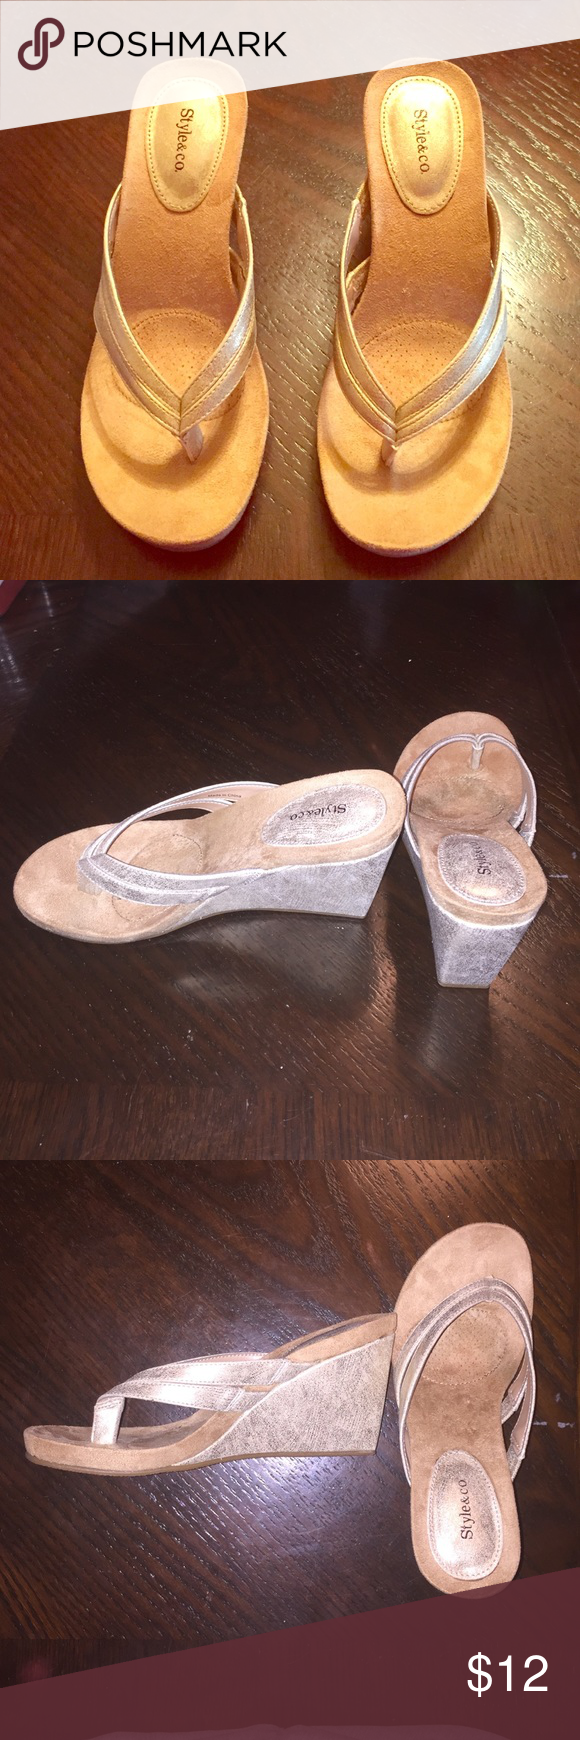 Designer Shoes Brand New in Original Box Style & Co Shoes Wedges